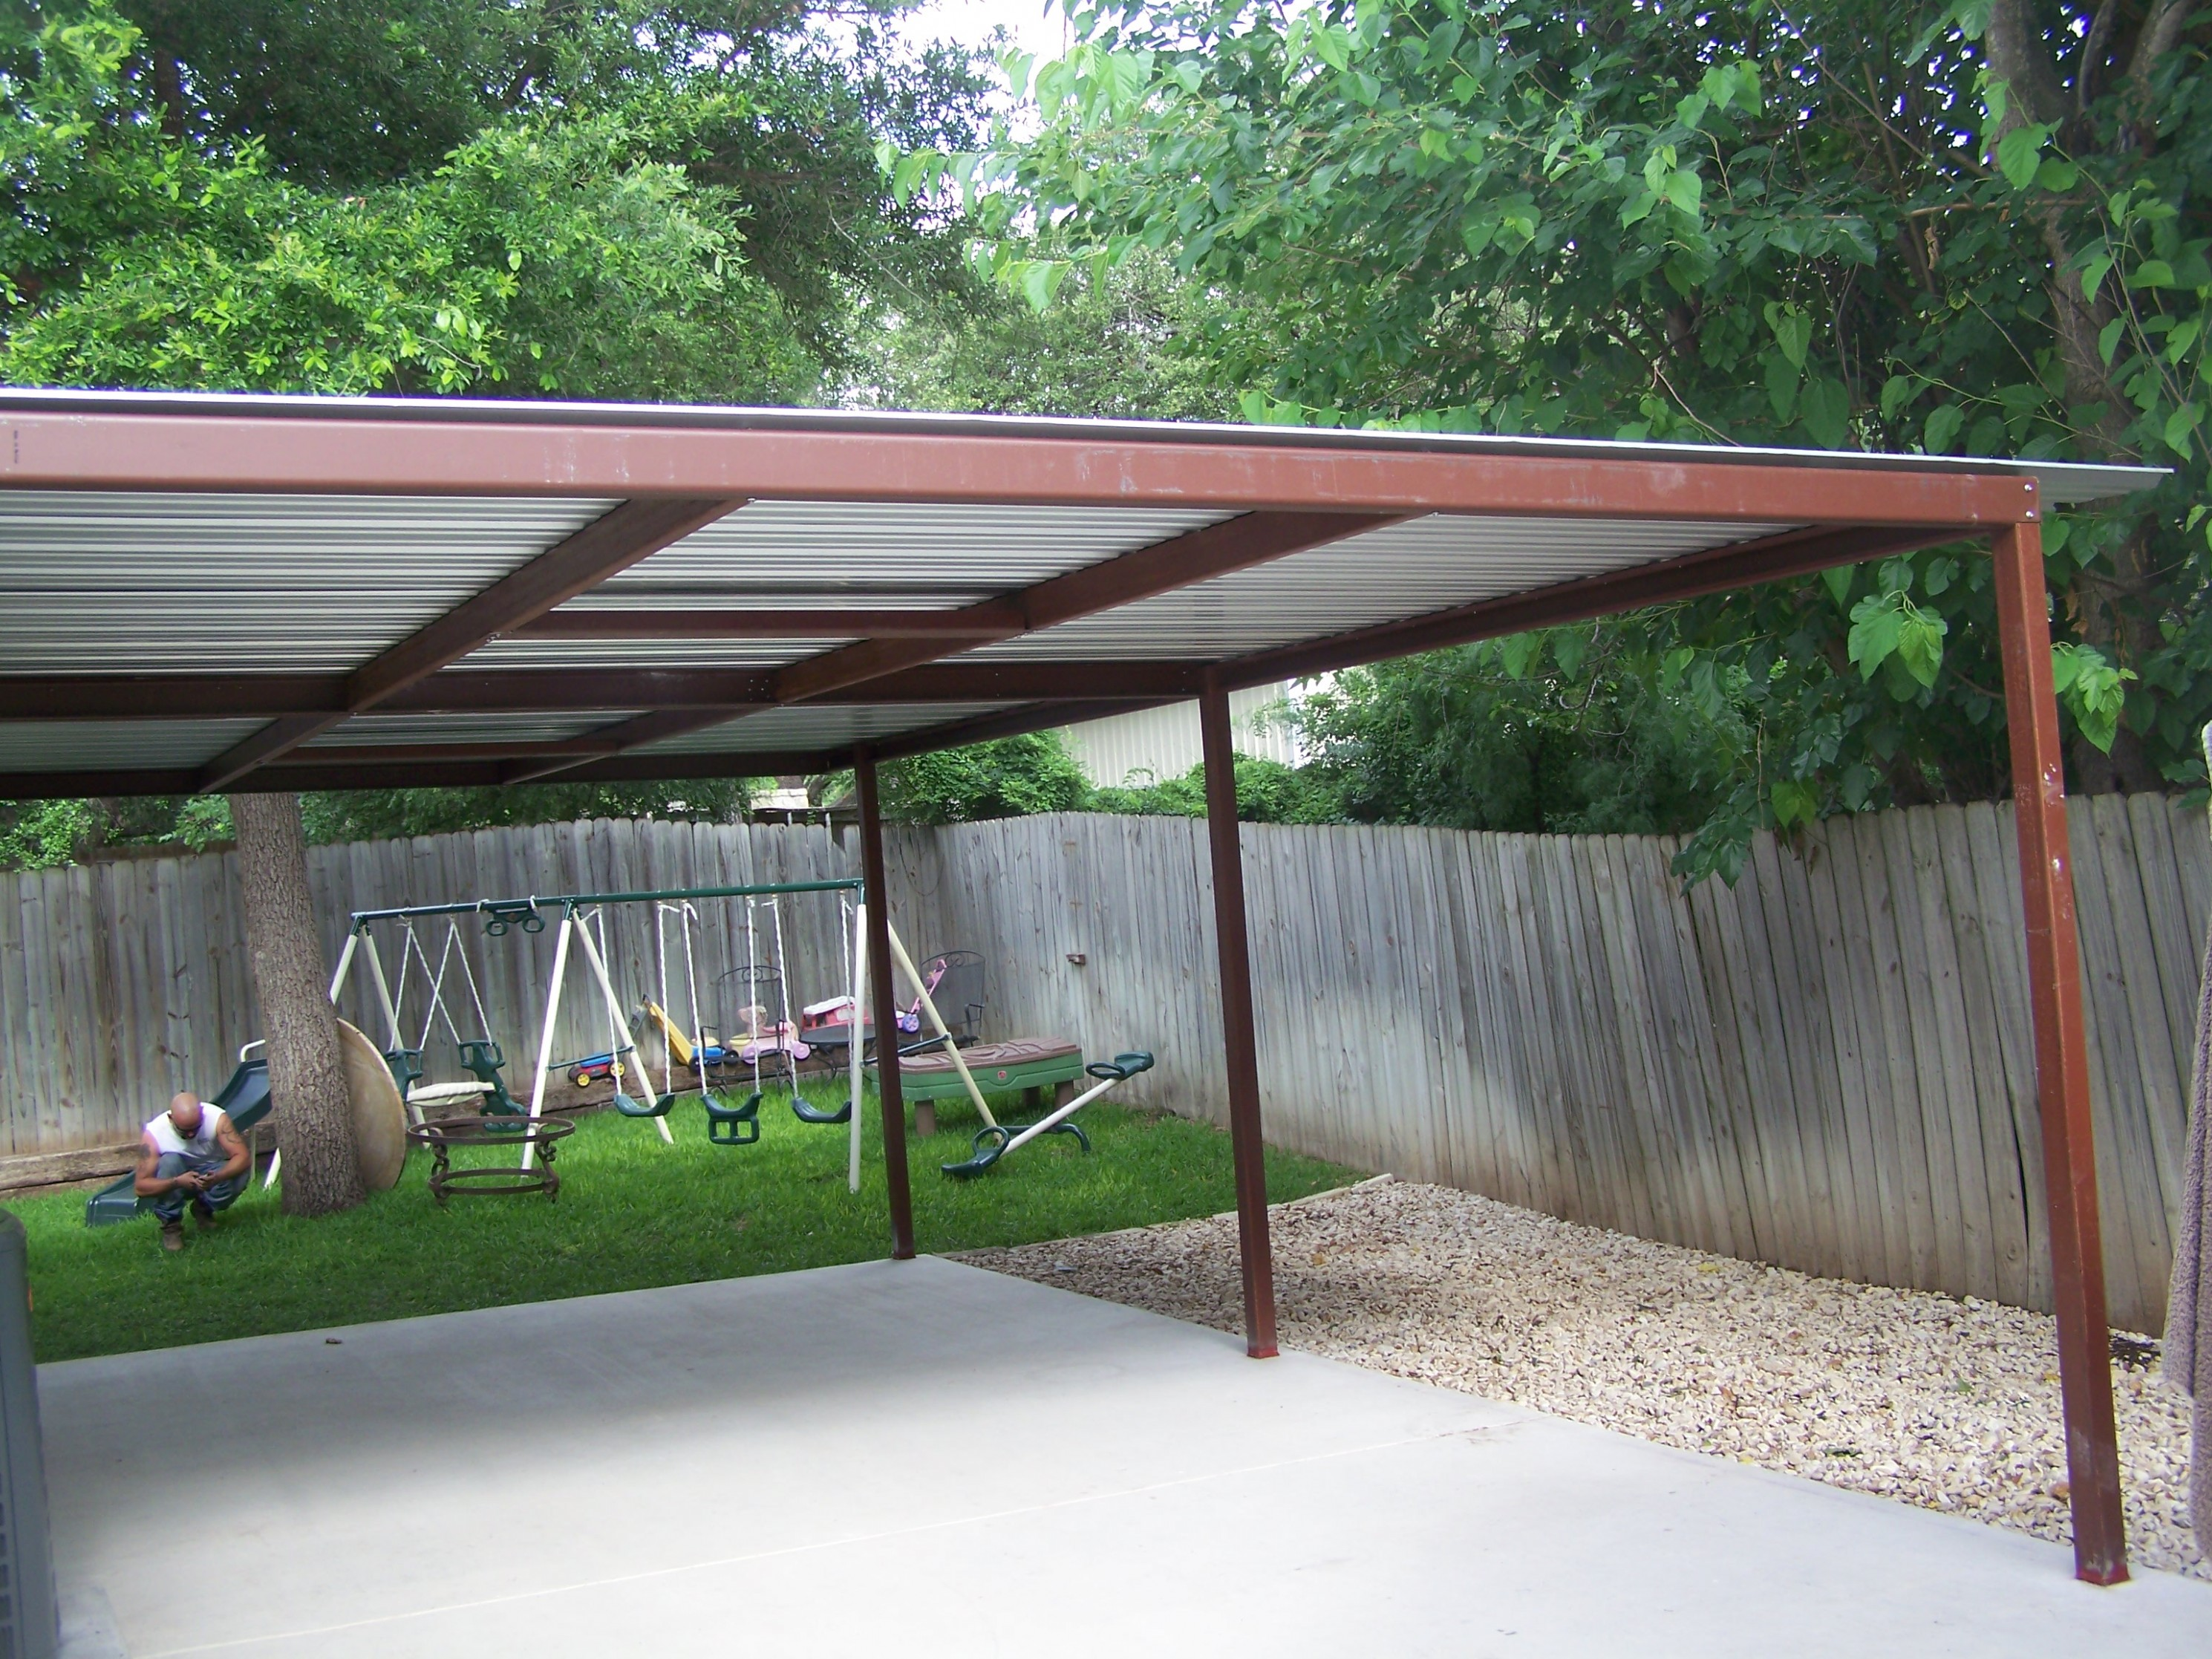 Image for The Hidden Agenda Of 12 X 12 Carport | 12 x 12 carport